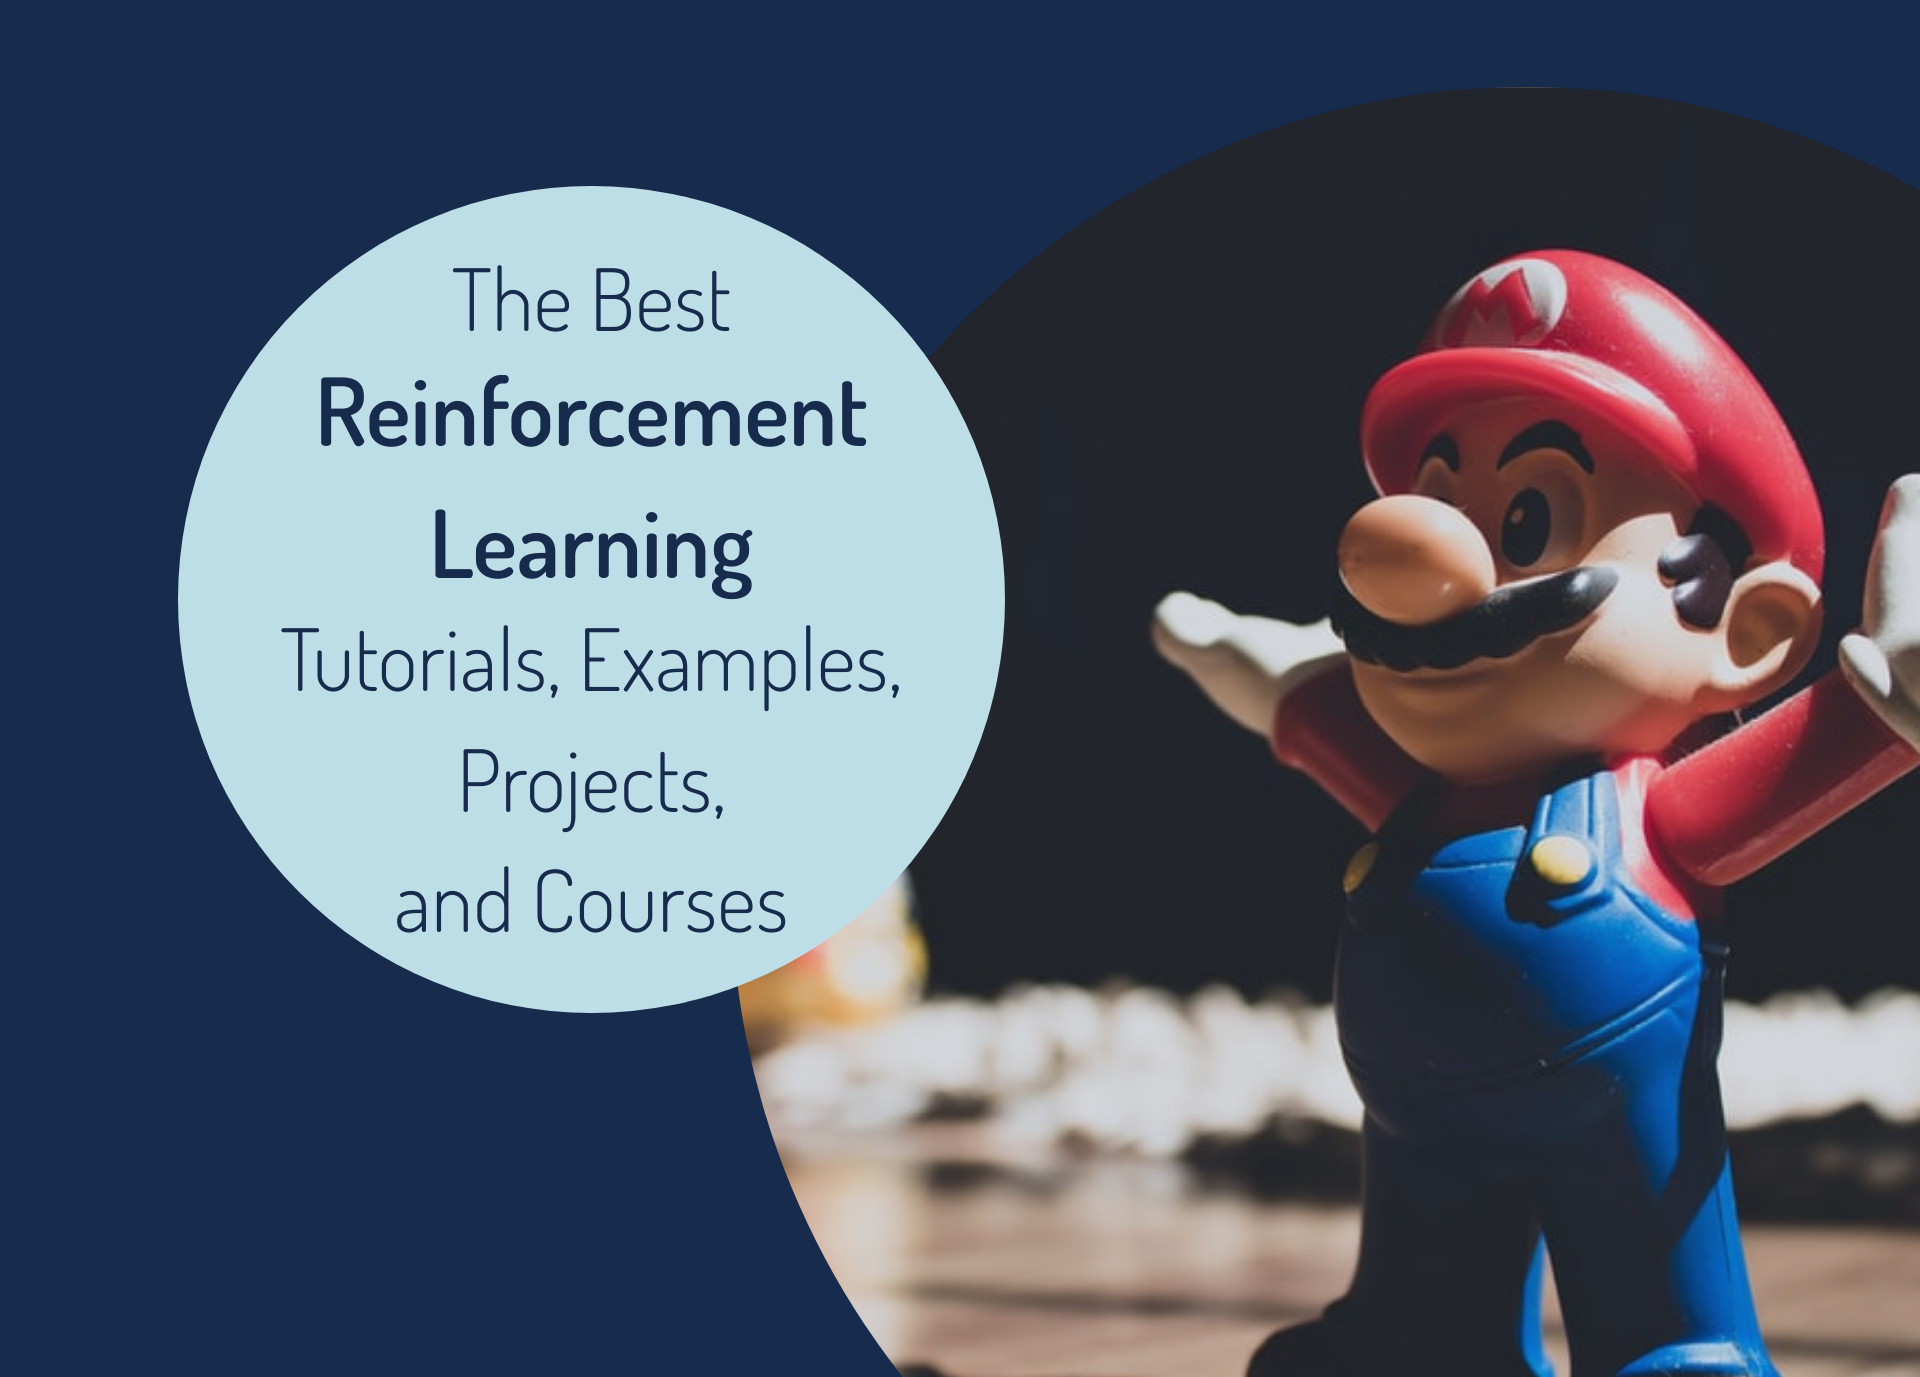 Best Reinforcement Learning Tutorials, Examples, Projects, and Courses